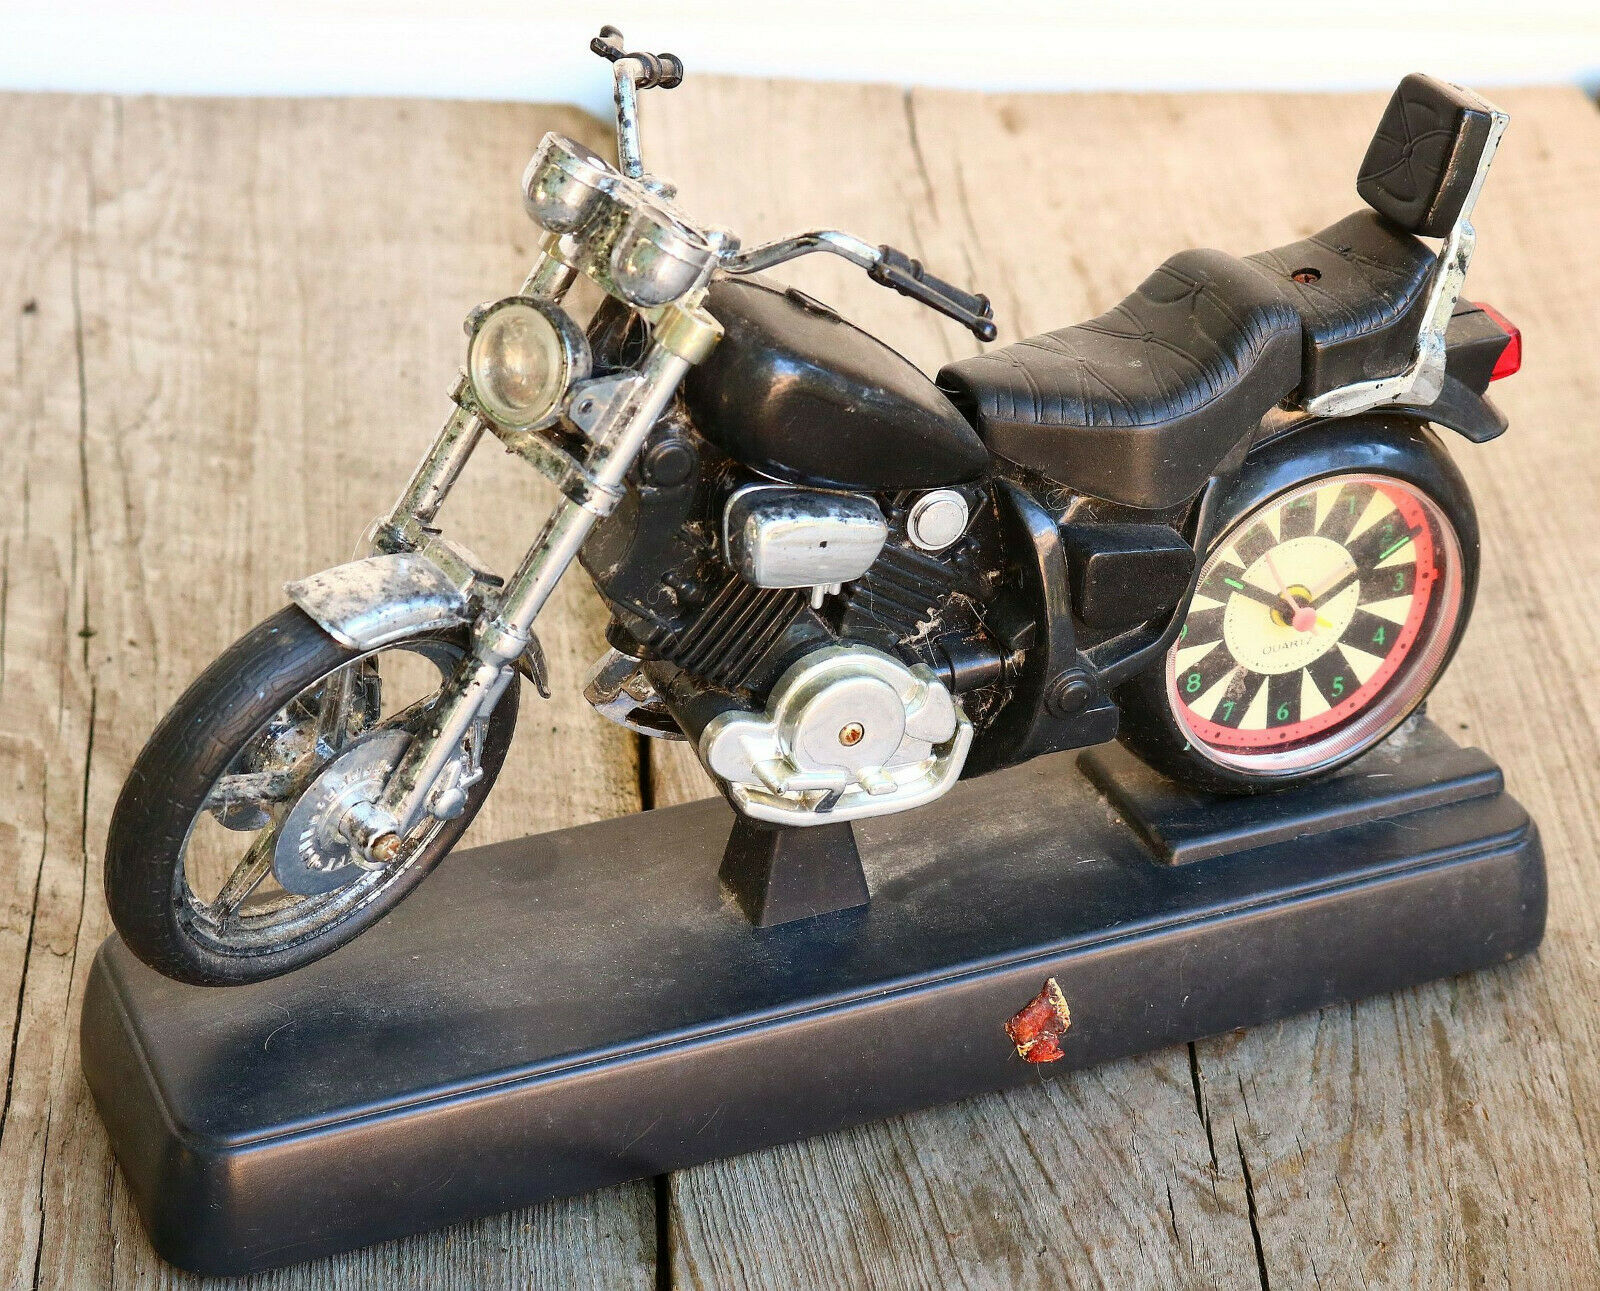 VINTAGE Motorcycle Toy Model BATTERY Desk Clock Biker Gift 70s Old Display AY